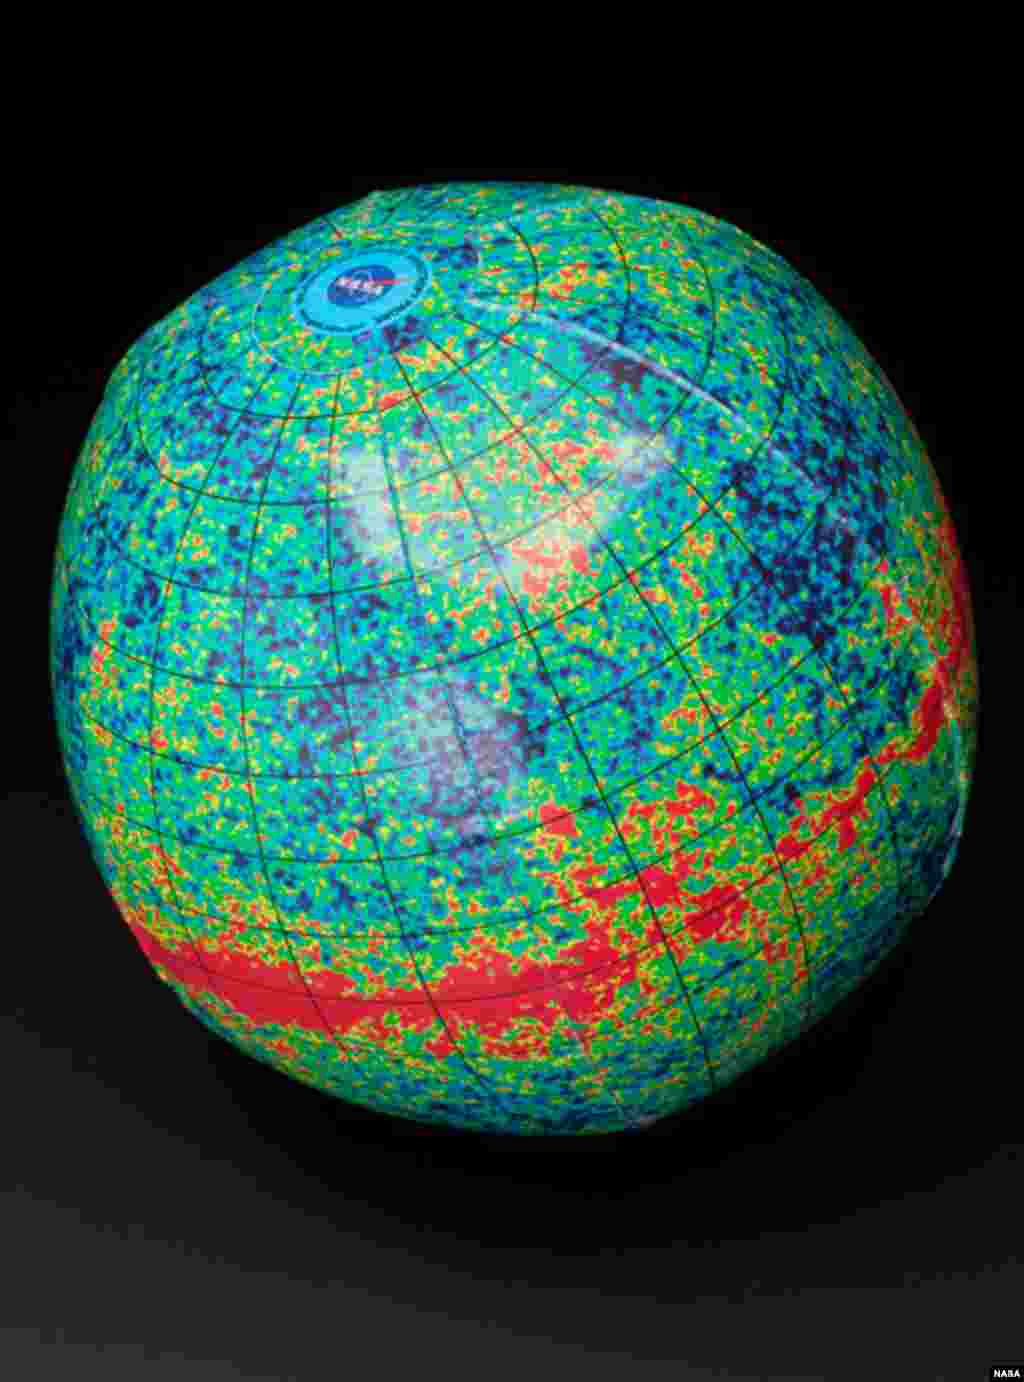 This cosmic beach ball displays a full-sky map of the microwave radiation left over from the Big Bang event that created the universe 13.7 billion years ago. (NASA)